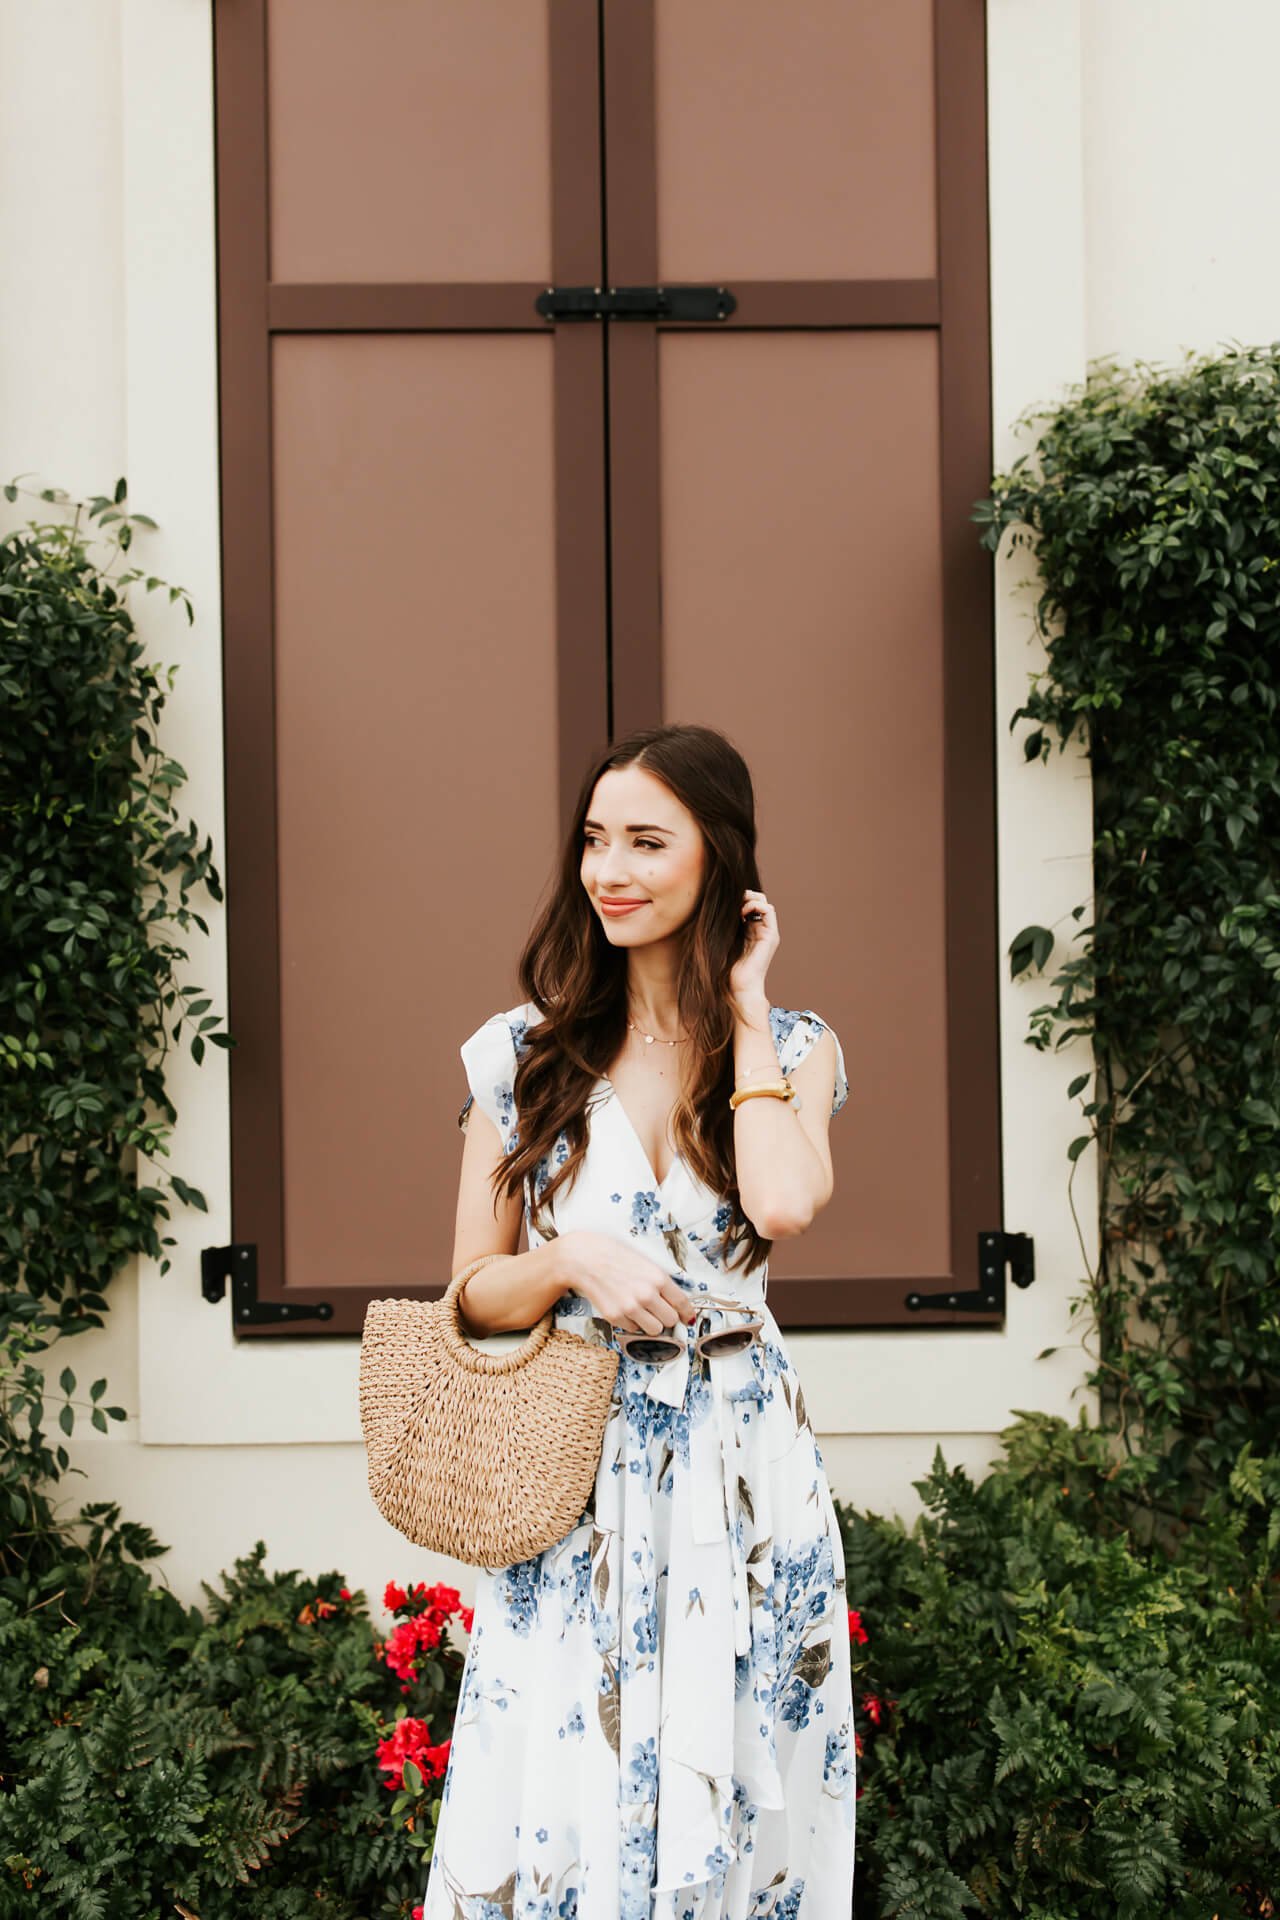 the cutest spring outfit with a floral dress and straw bag